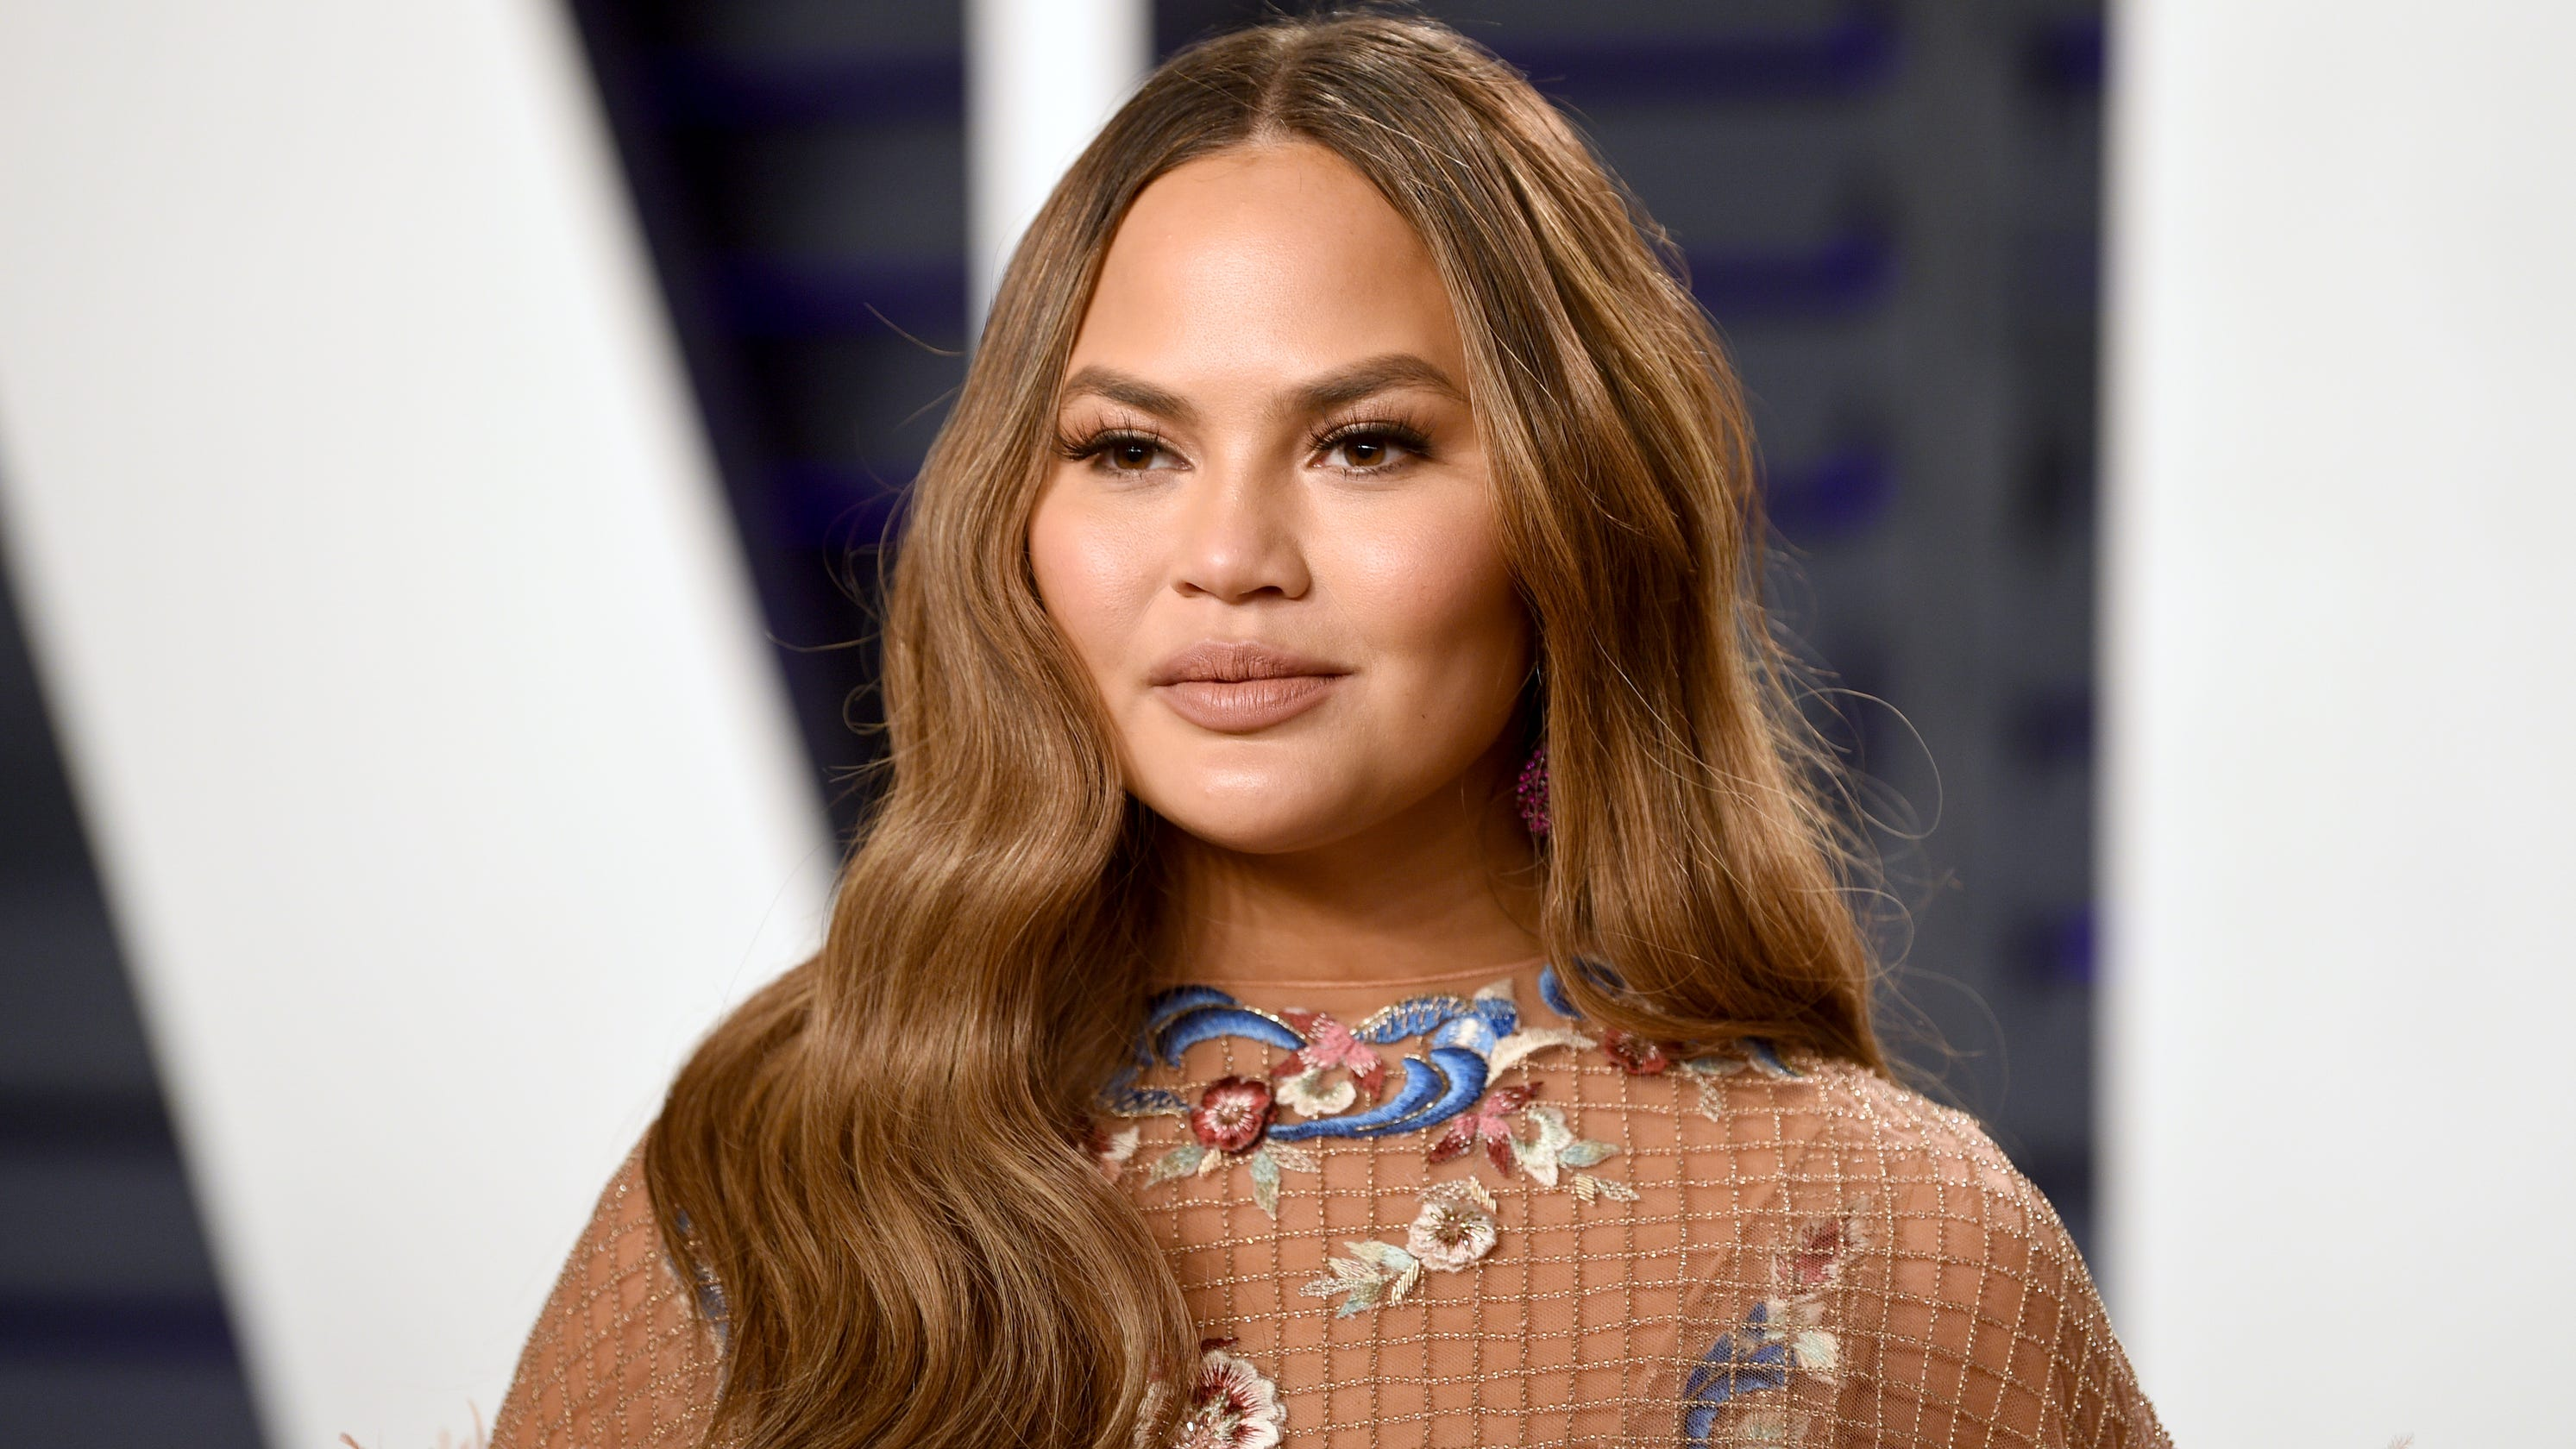 Chrissy Teigen says she's on 'serious bed rest' during her 'difficult' third pregnancy thumbnail